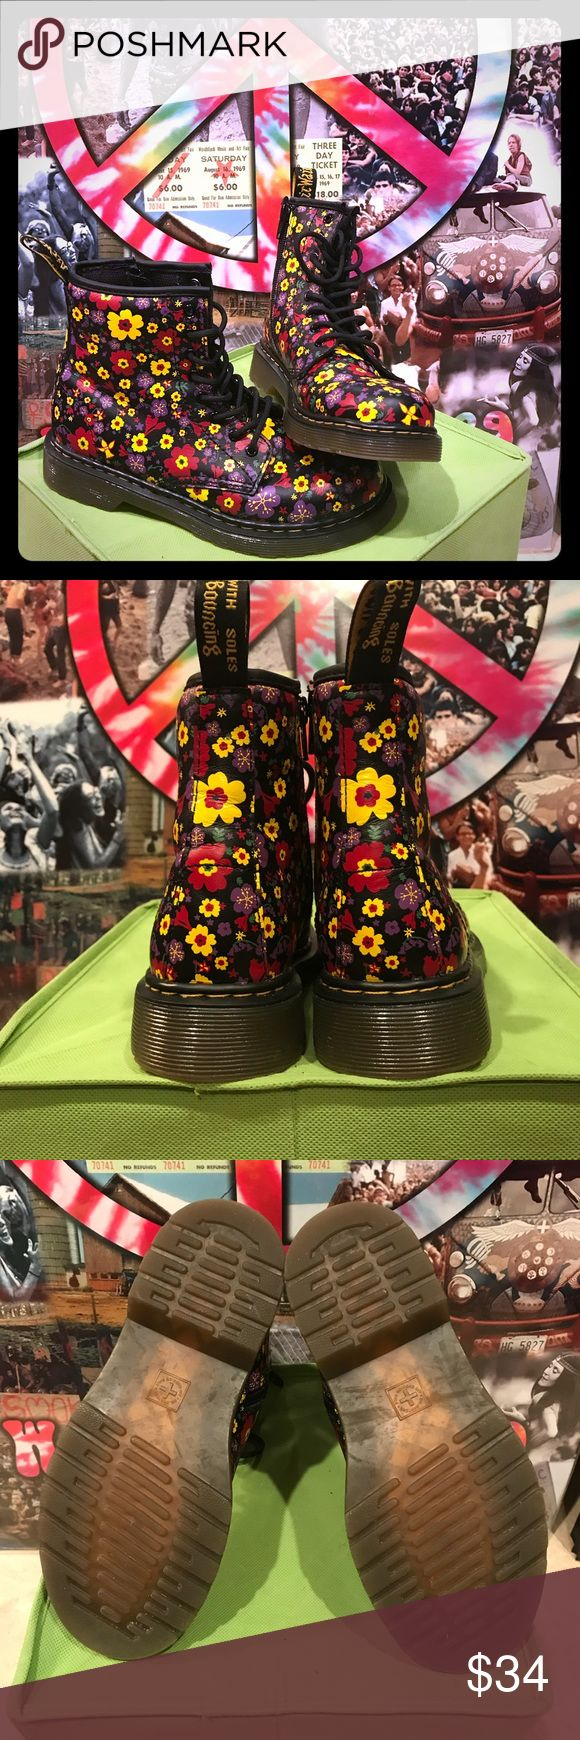 Black Floral Print Kids Doc Martens US Sz 3 🌸💛 EUC Black Floral Print Doc Martens!! Worn once for 2 hours!!!   Such a fun Print on a more rugged/hip boot  Kid's Sz 3 (US) however I wear a 5.5/6 in Women's and these fit PERCECTLY!!   Pretty much brand new, open to offers ✌🏻💛🛍 Dr. Martens Shoes Boots